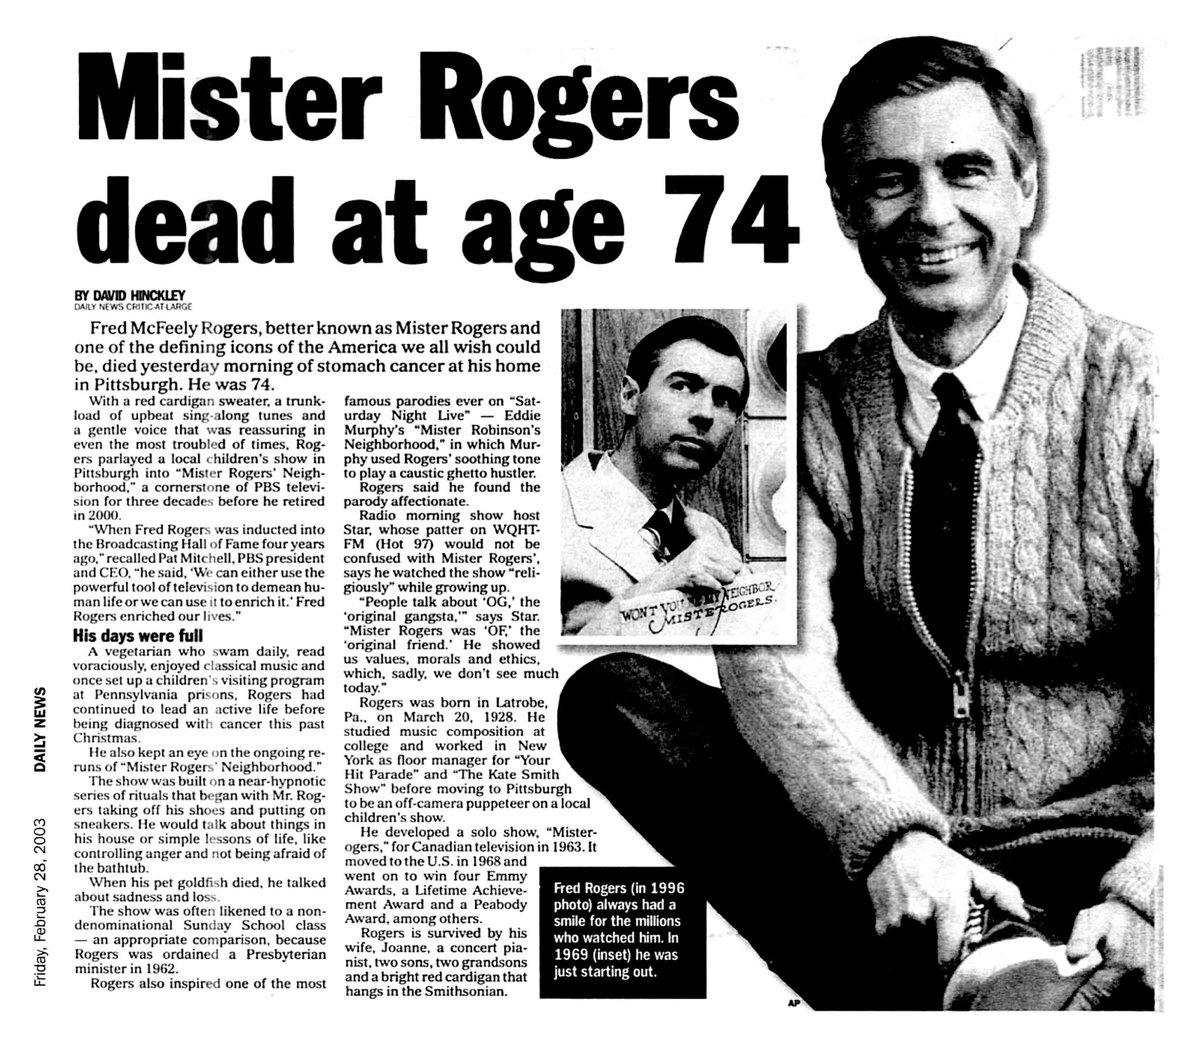 Retronewsnow On Twitter On February 27 2003 Fred Mcfeely Rogers Died At The Age Of 74